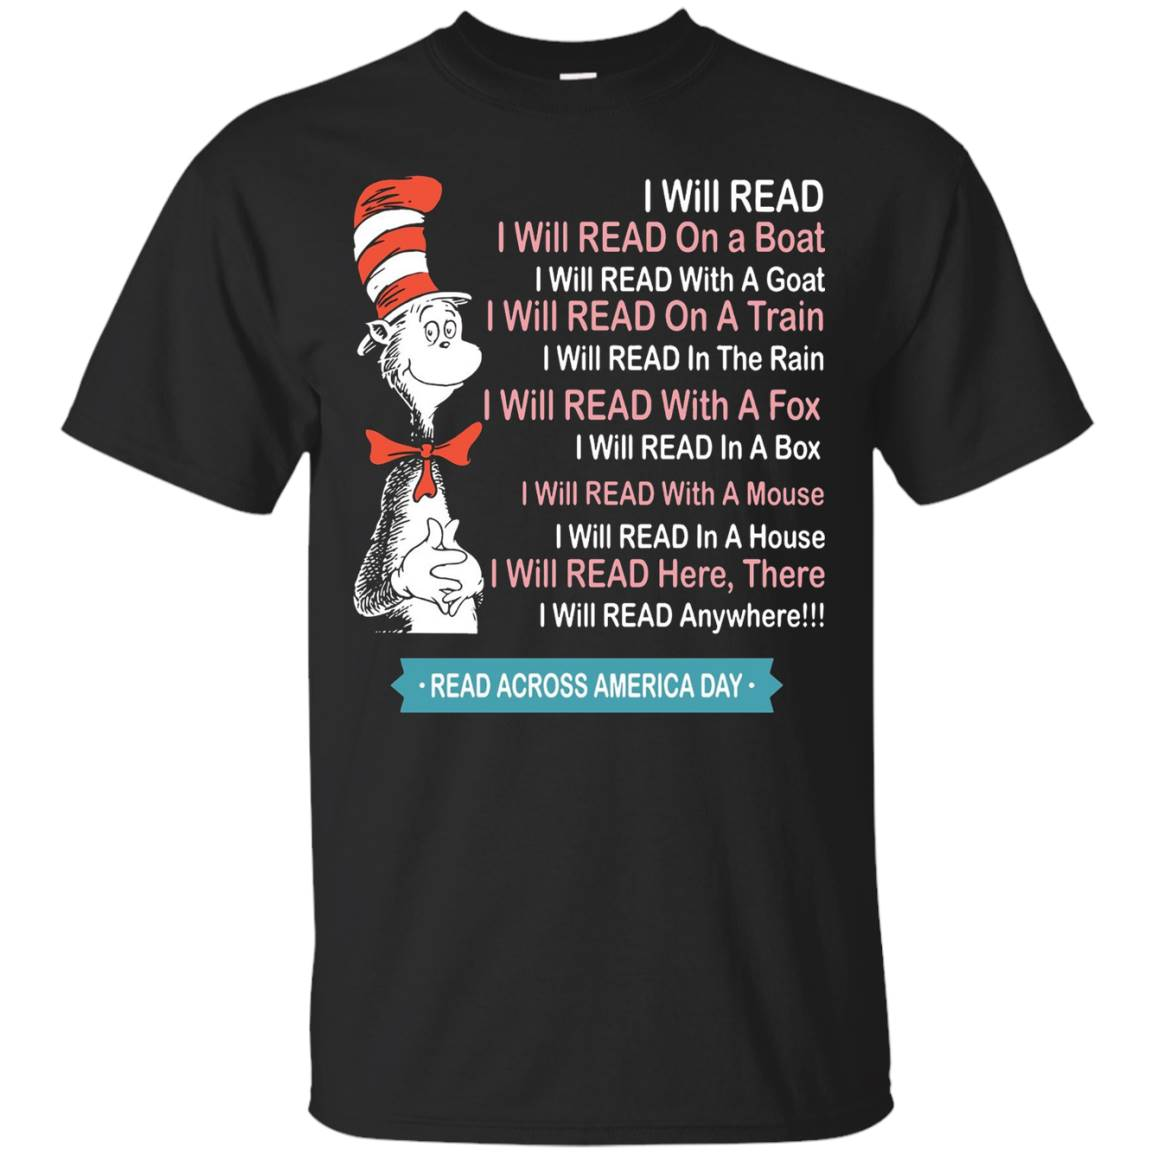 Read Across America Day Shirt – I Will Read T-Shirt